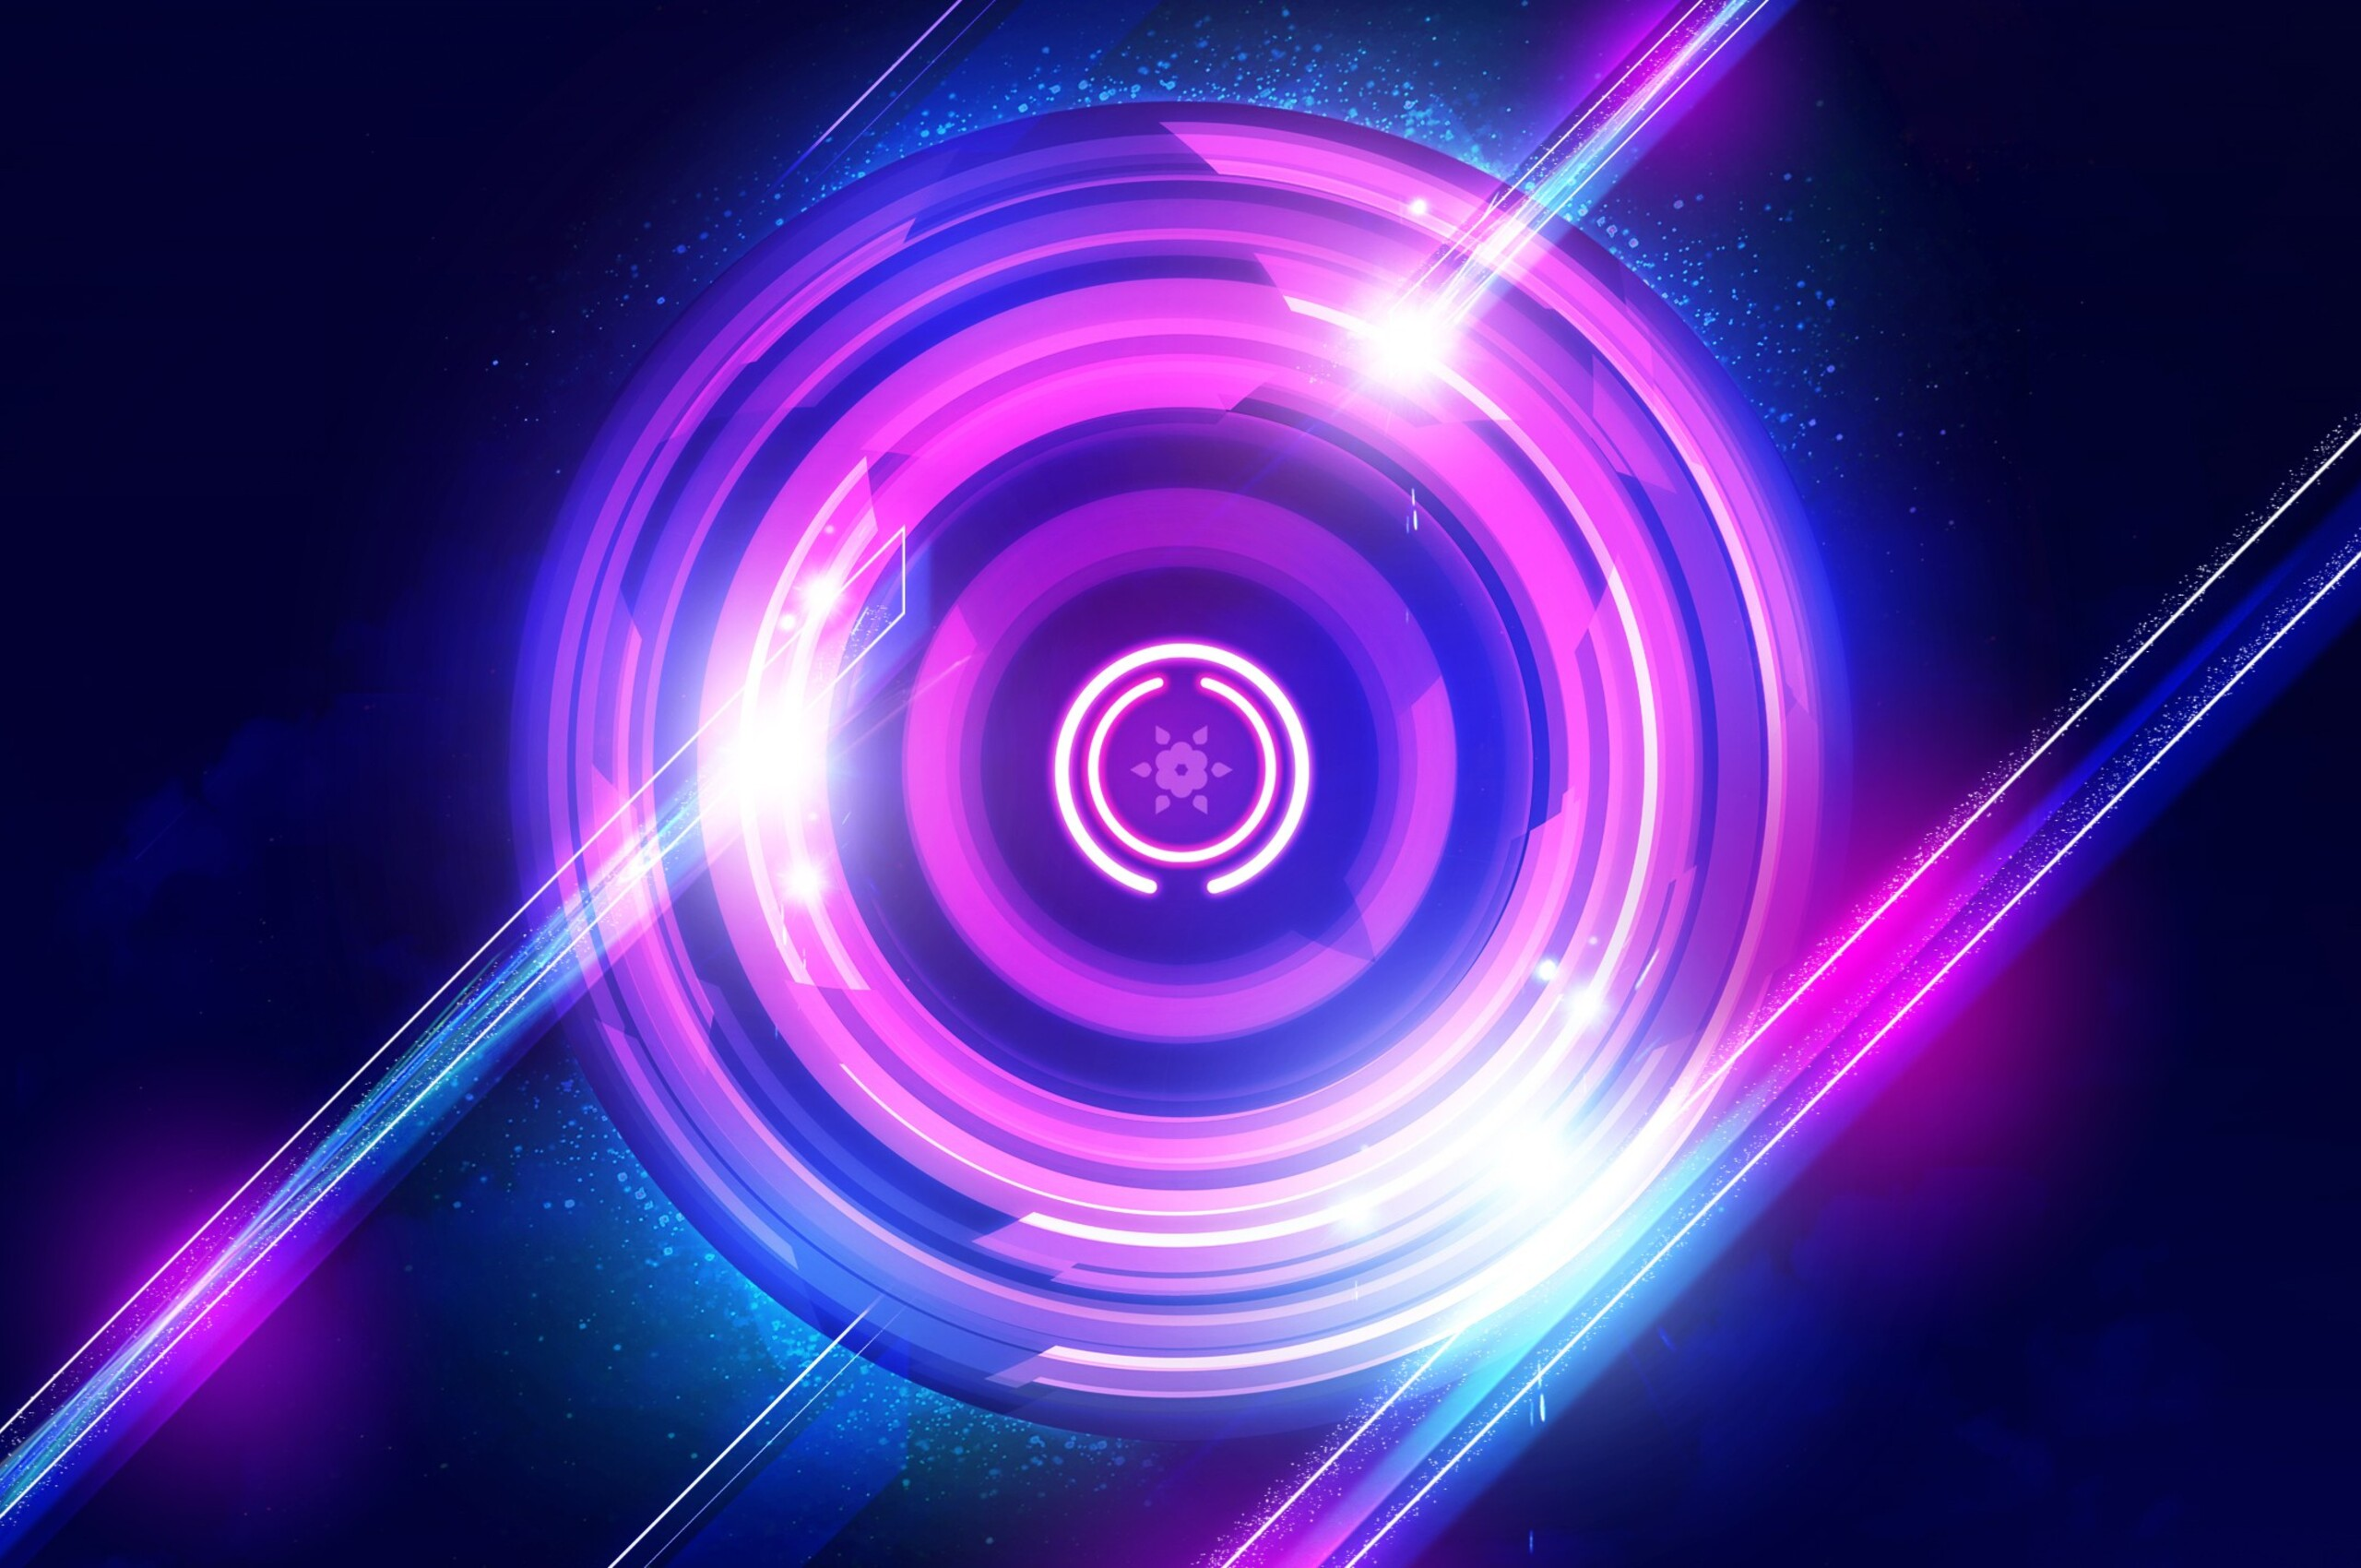 circle-digital-art-5m.jpg